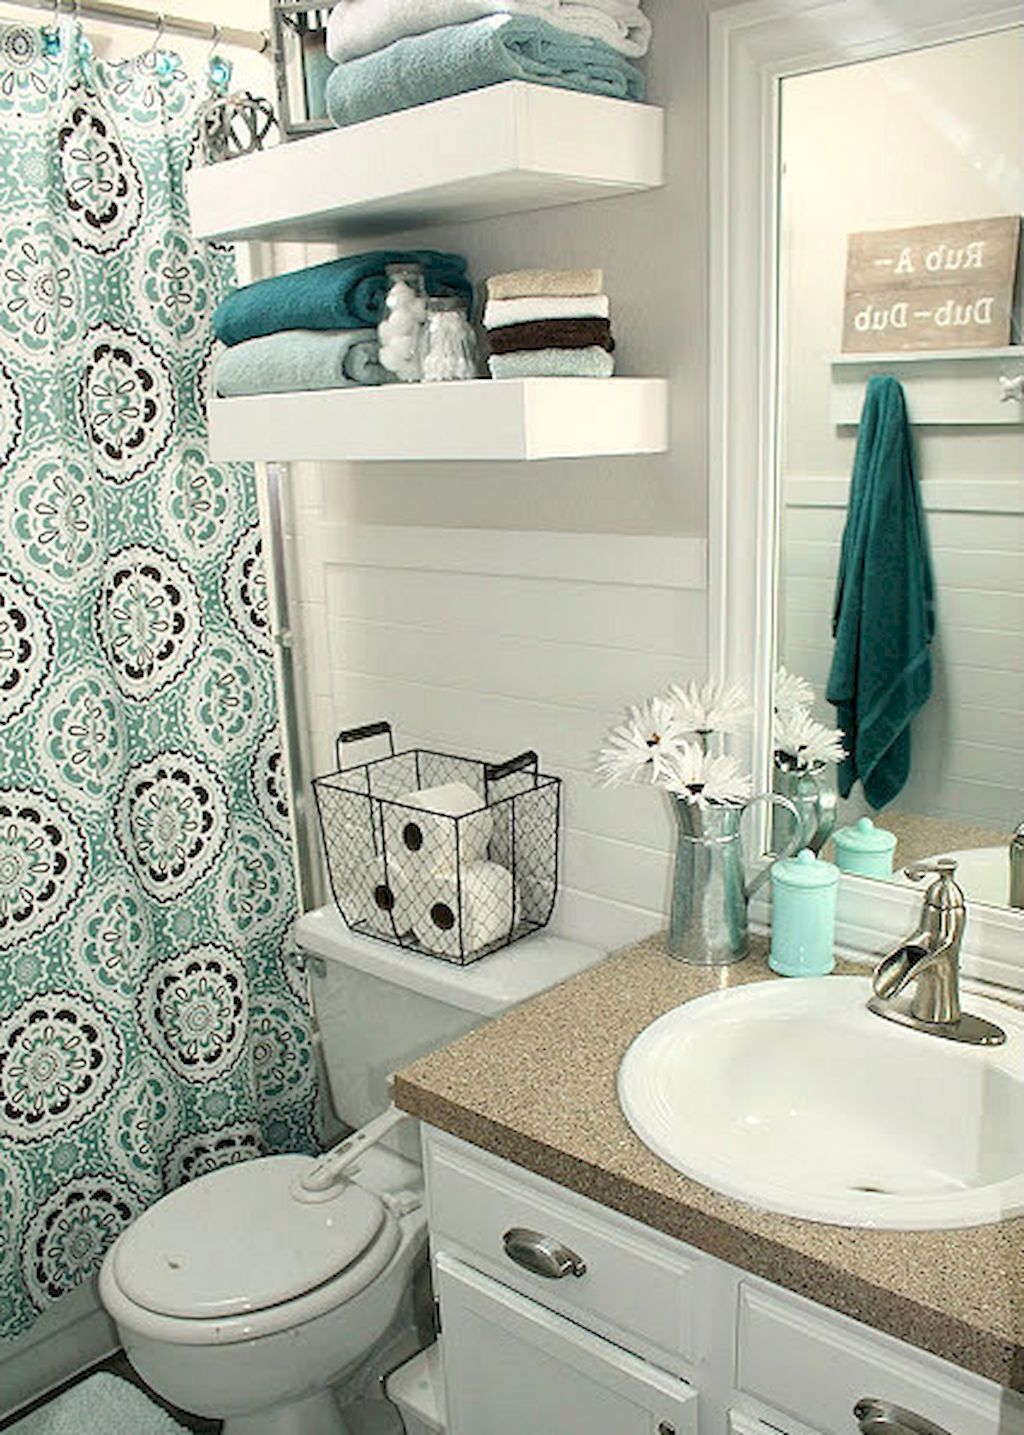 decorating ideas for bathrooms on a budget pin by tinsley on happy homes 27692